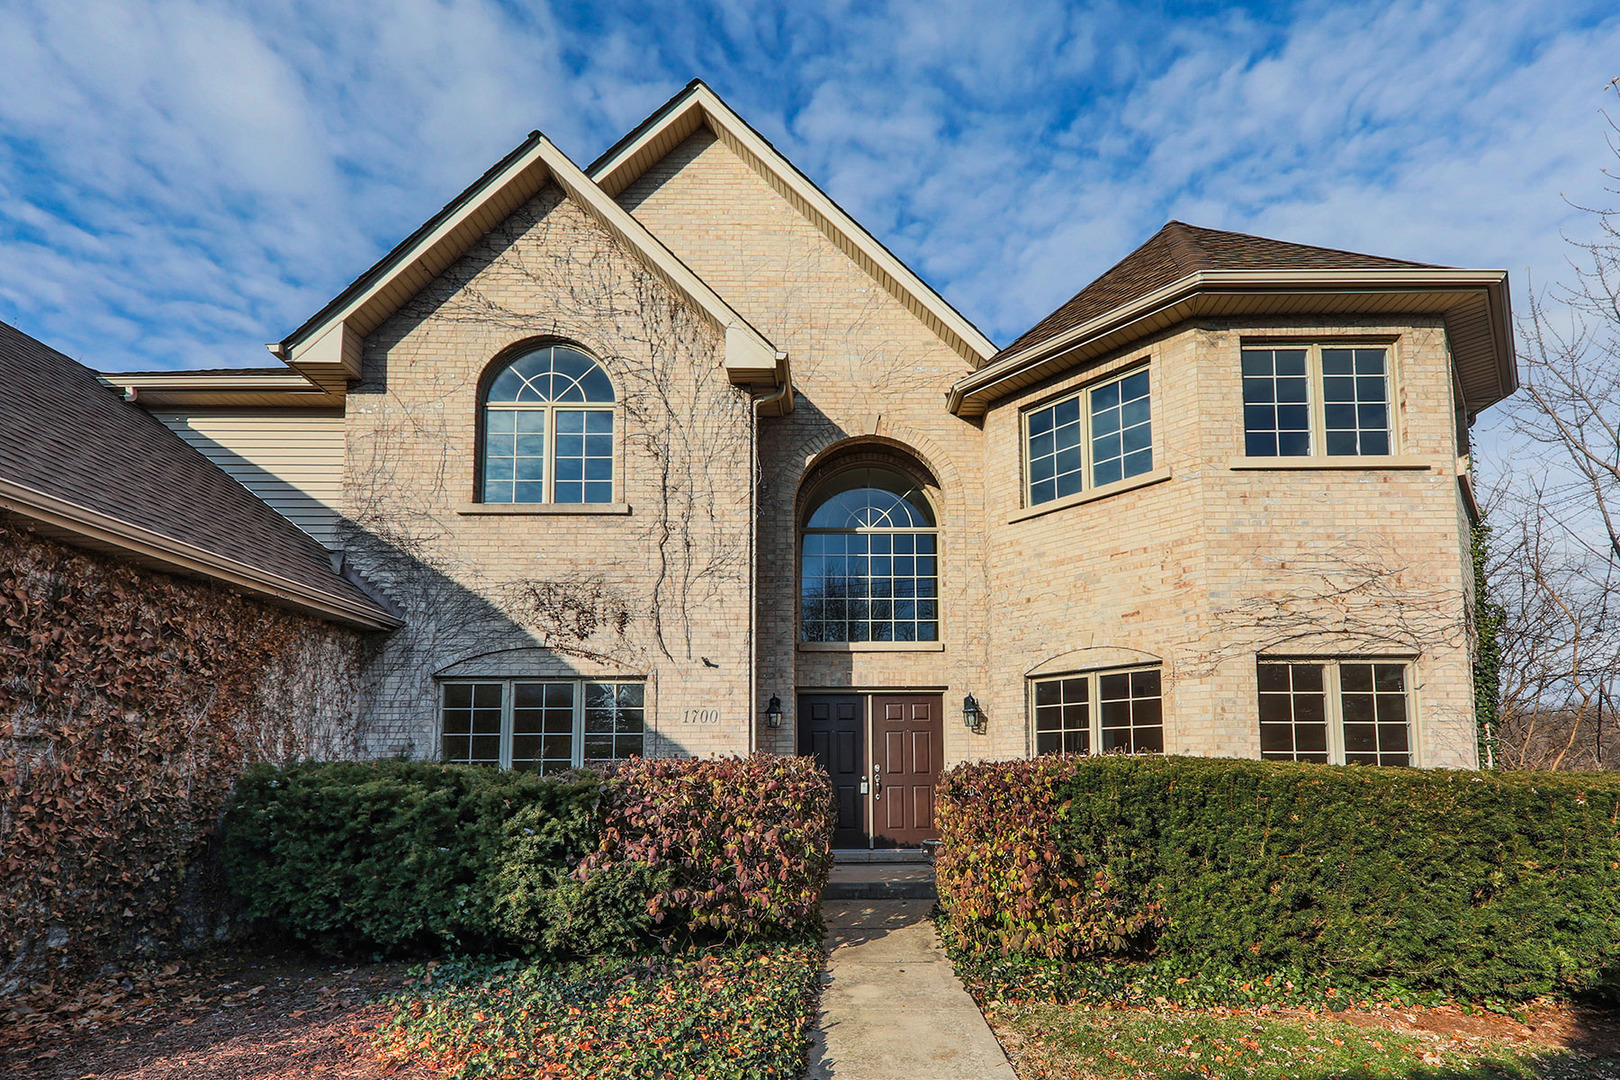 Photo for 1700 Maple Avenue, DOWNERS GROVE, IL 60515 (MLS # 10268866)